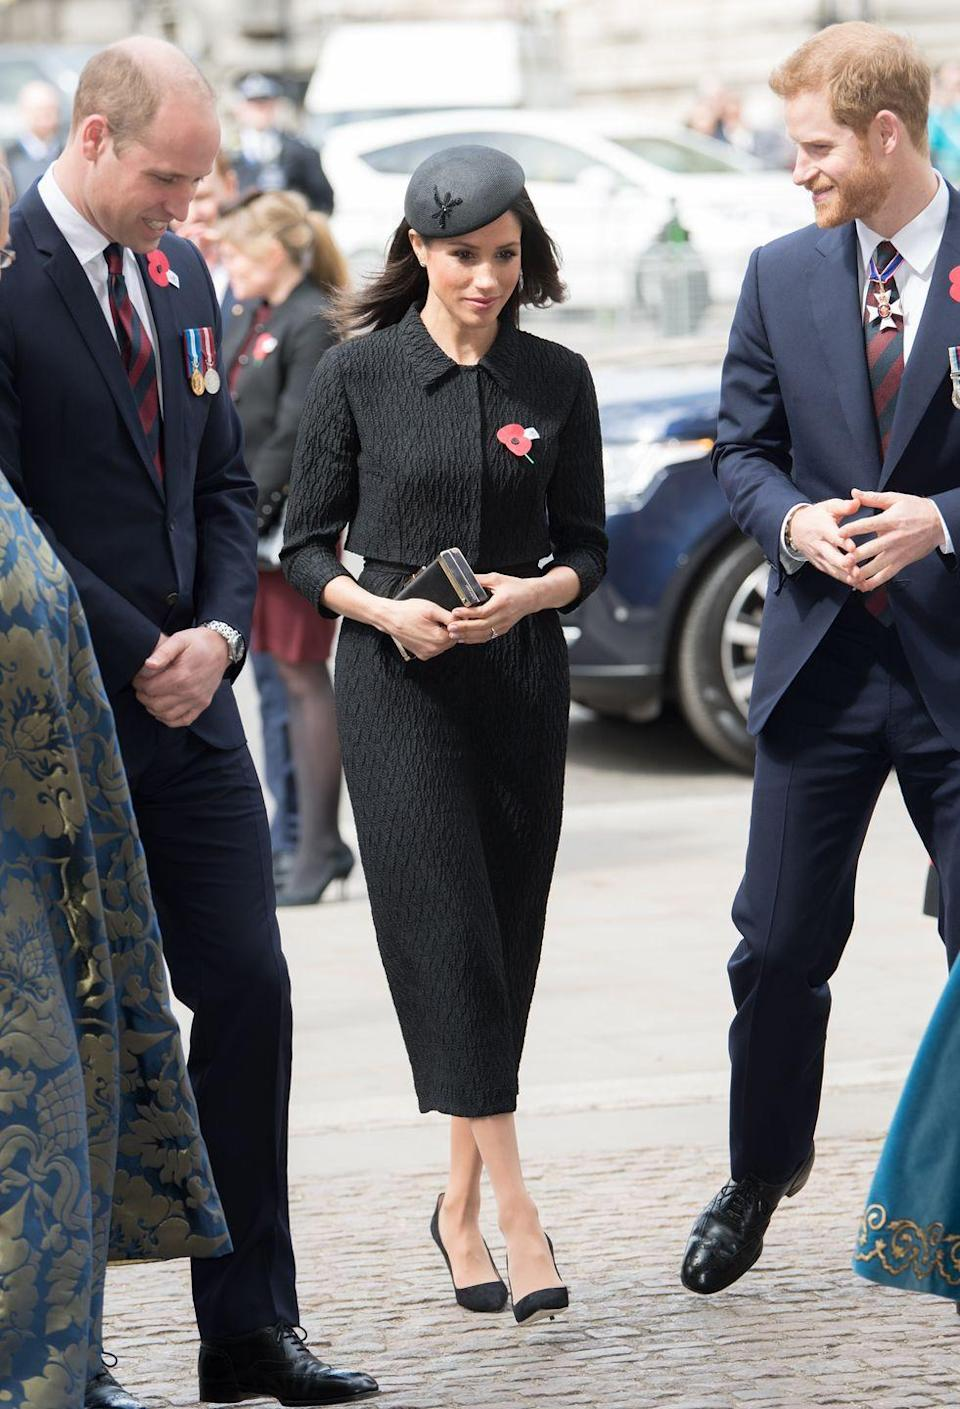 "<p>Markle wore another somber ensemble <a href=""https://www.townandcountrymag.com/society/tradition/a20060050/prince-william-anzac-day-royal-baby-3-comments/"" rel=""nofollow noopener"" target=""_blank"" data-ylk=""slk:for the Anzac Day service"" class=""link rapid-noclick-resp"">for the Anzac Day service</a> at Westminster Abbey. For this occasion, she wore custom Emilia Wickstead blazer and dress with a Philip Treacy beret, Manolo Blahnik shoes, and a Jimmy Choo clutch. She also wore a poppy pin, which is worn in remembrance of those who died in war. </p>"